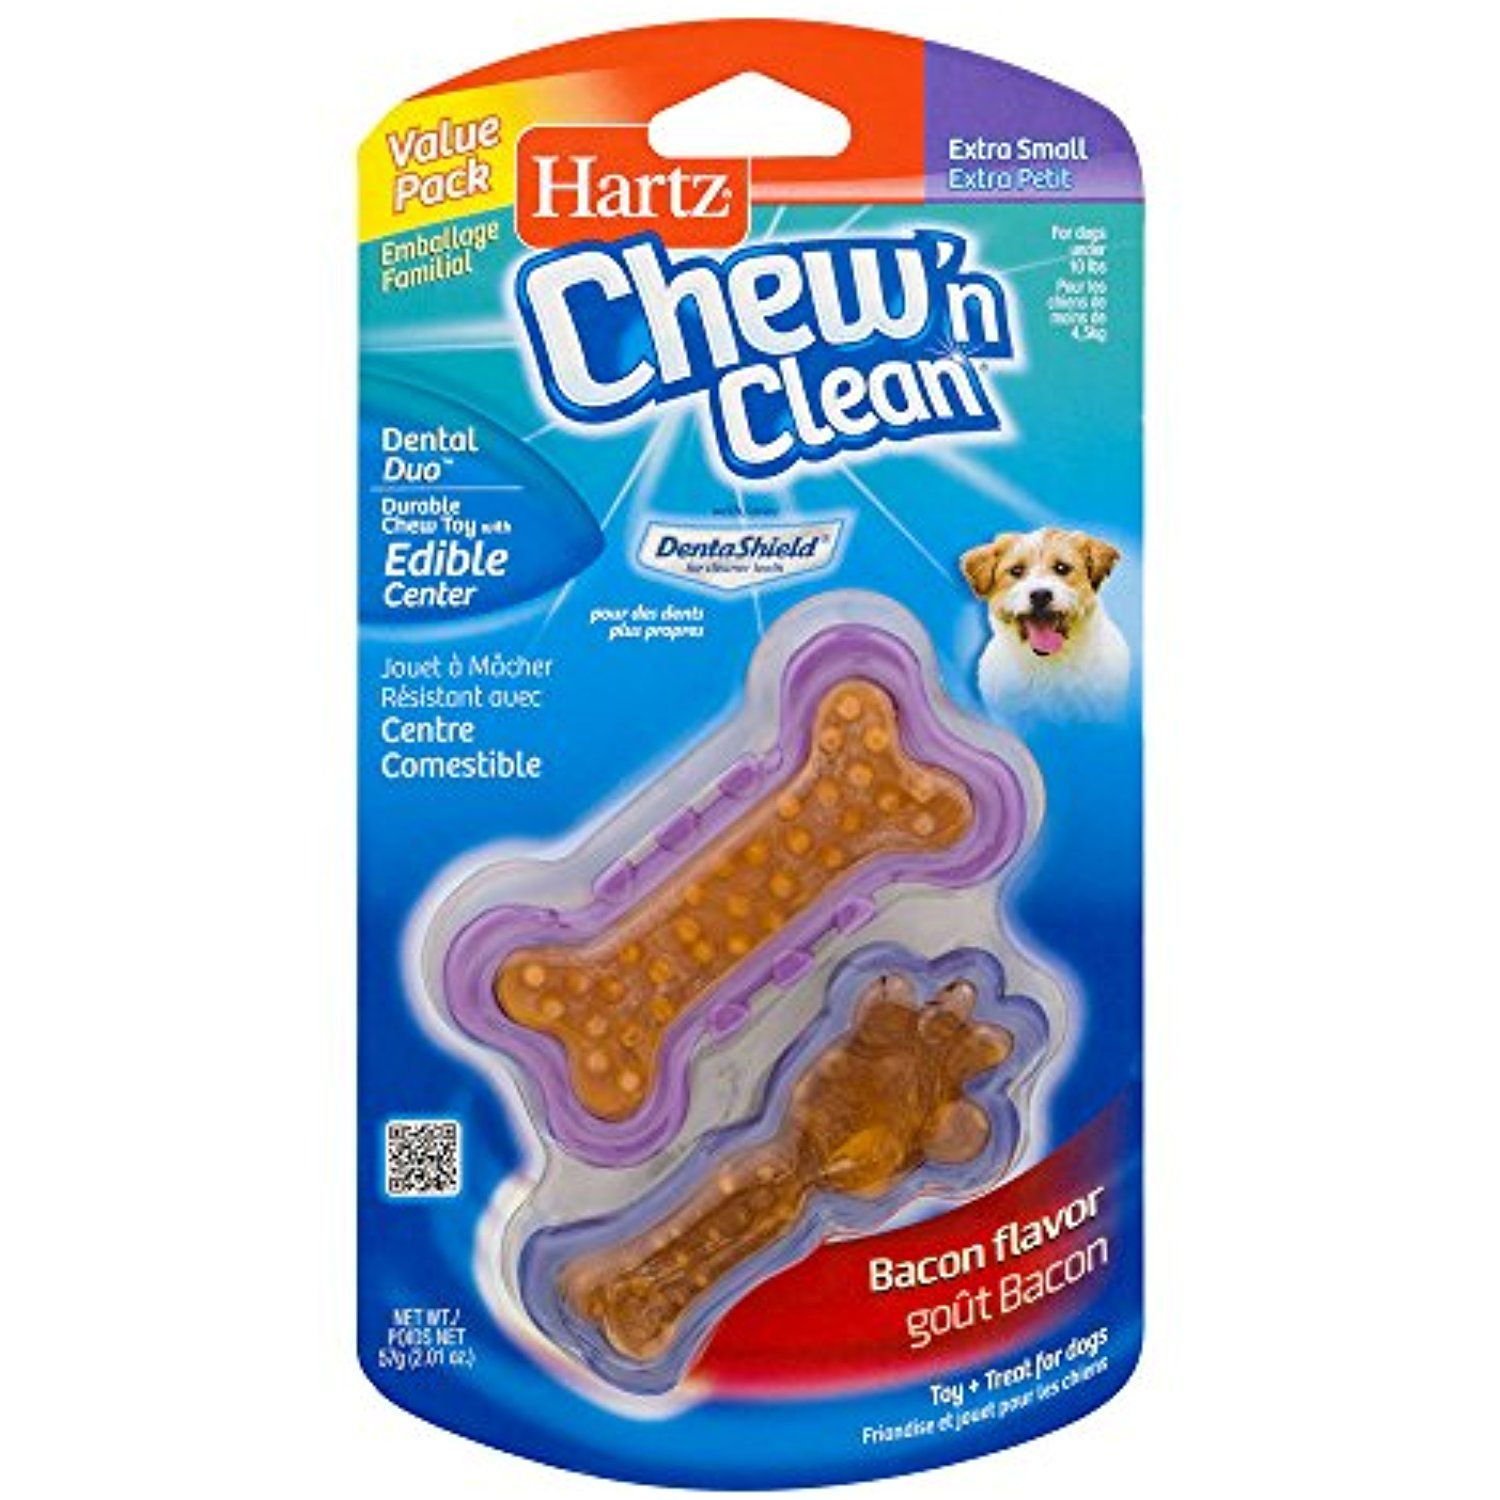 Hartz Dental Duo Bone Shaped Toy And Treat Combination For Small